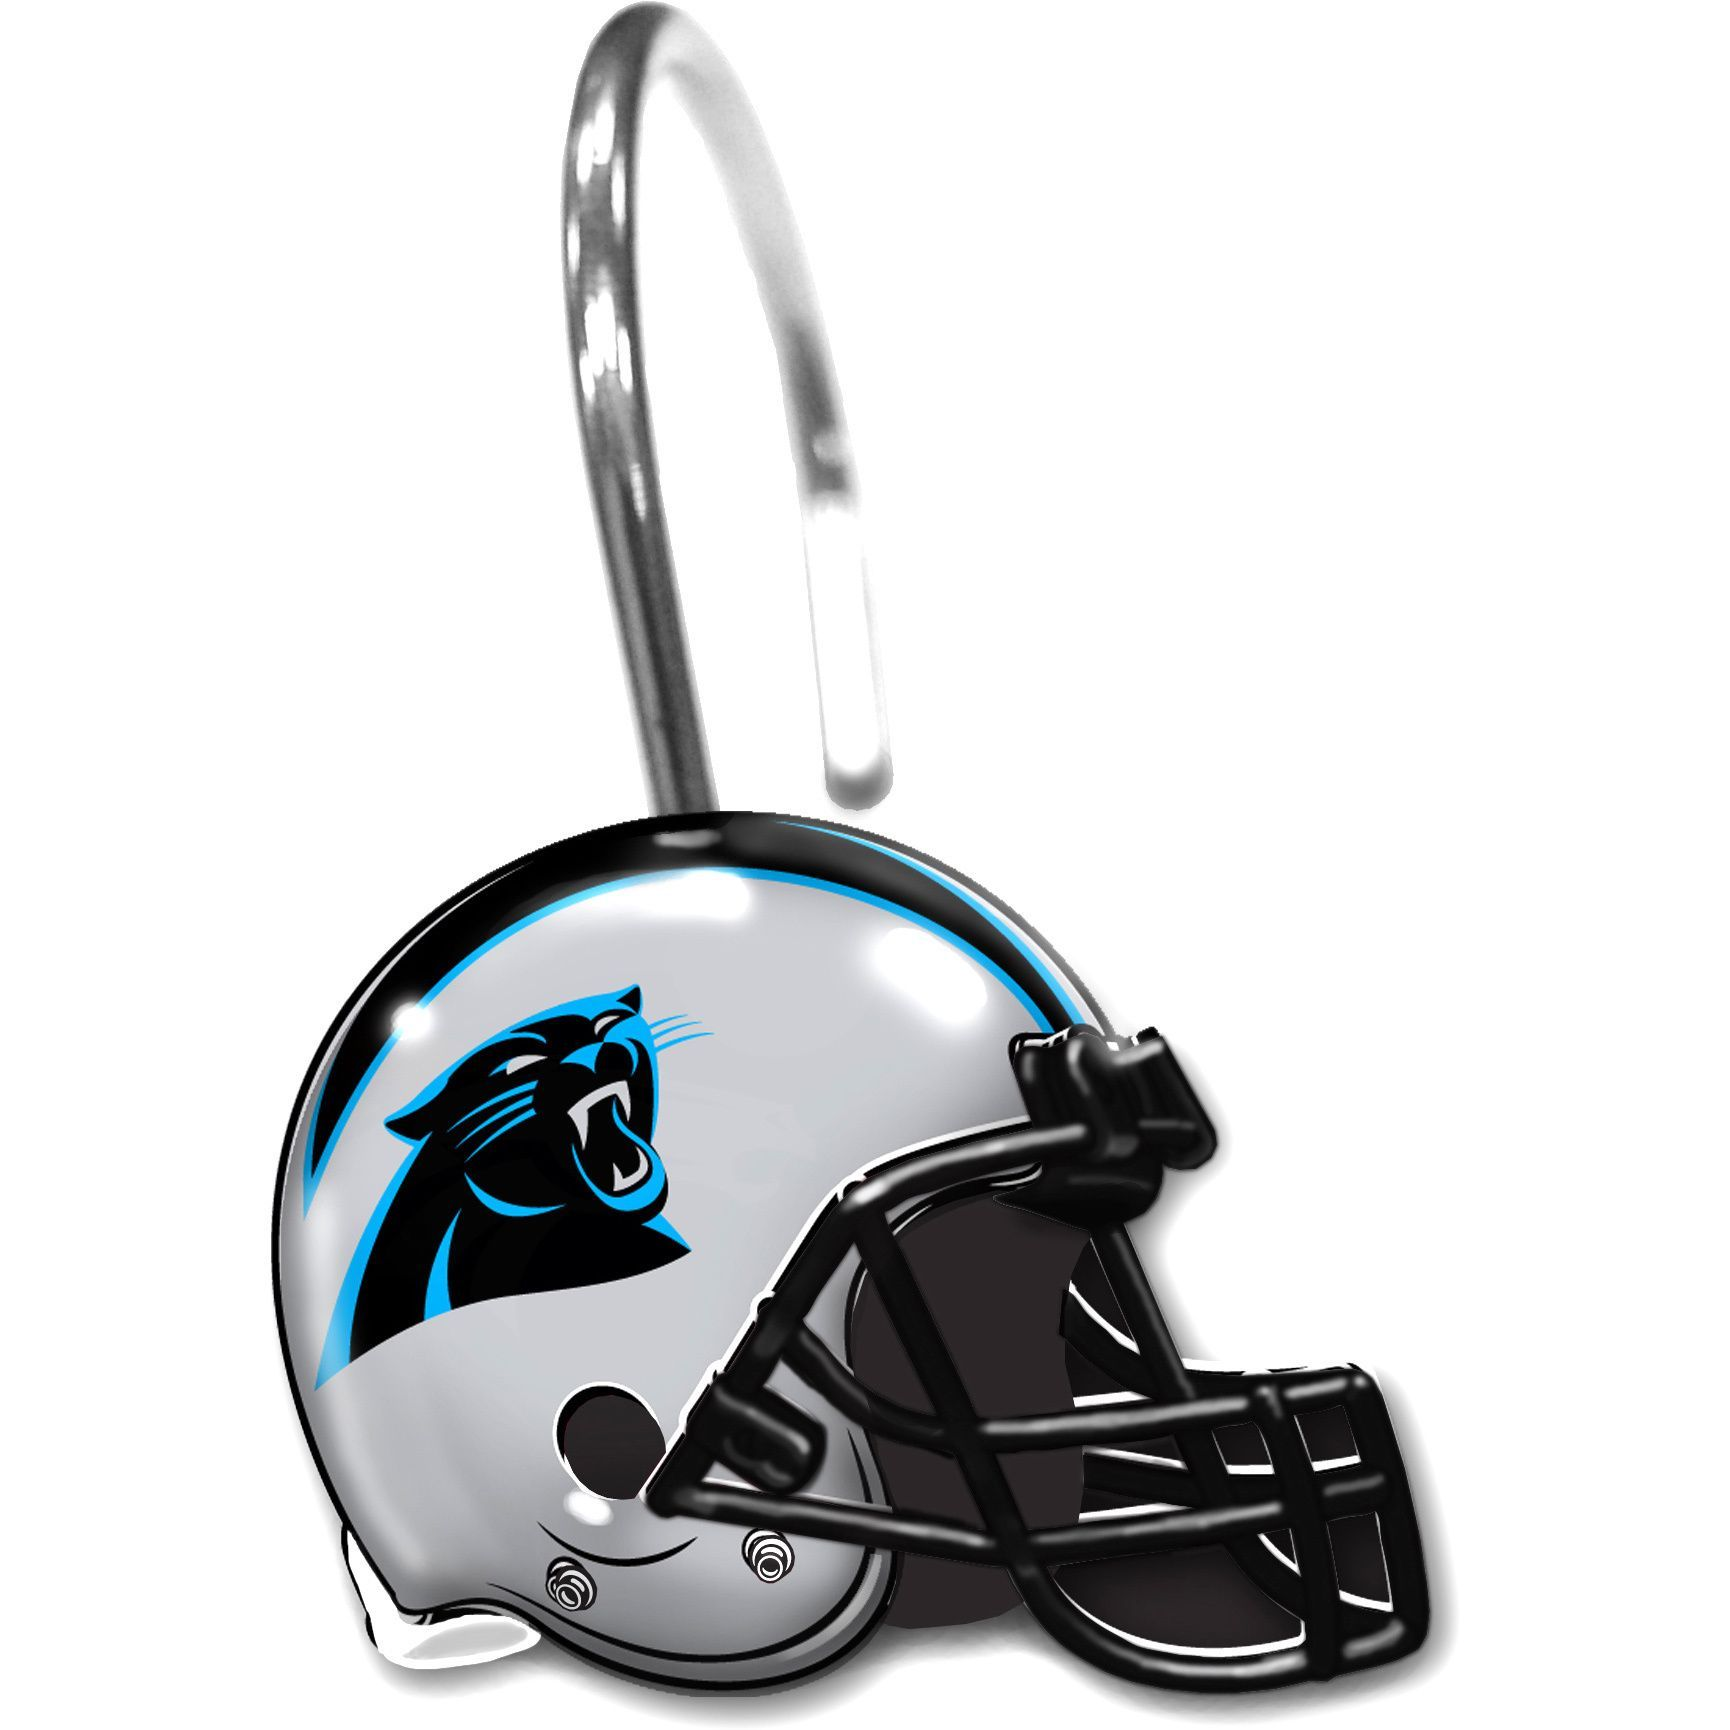 [[start Tab]] Description What Better Way To Hold Up A Shower Curtain Than  With Shower Rings That Show Off Your Favorite NFL Carolina Panthers Team?